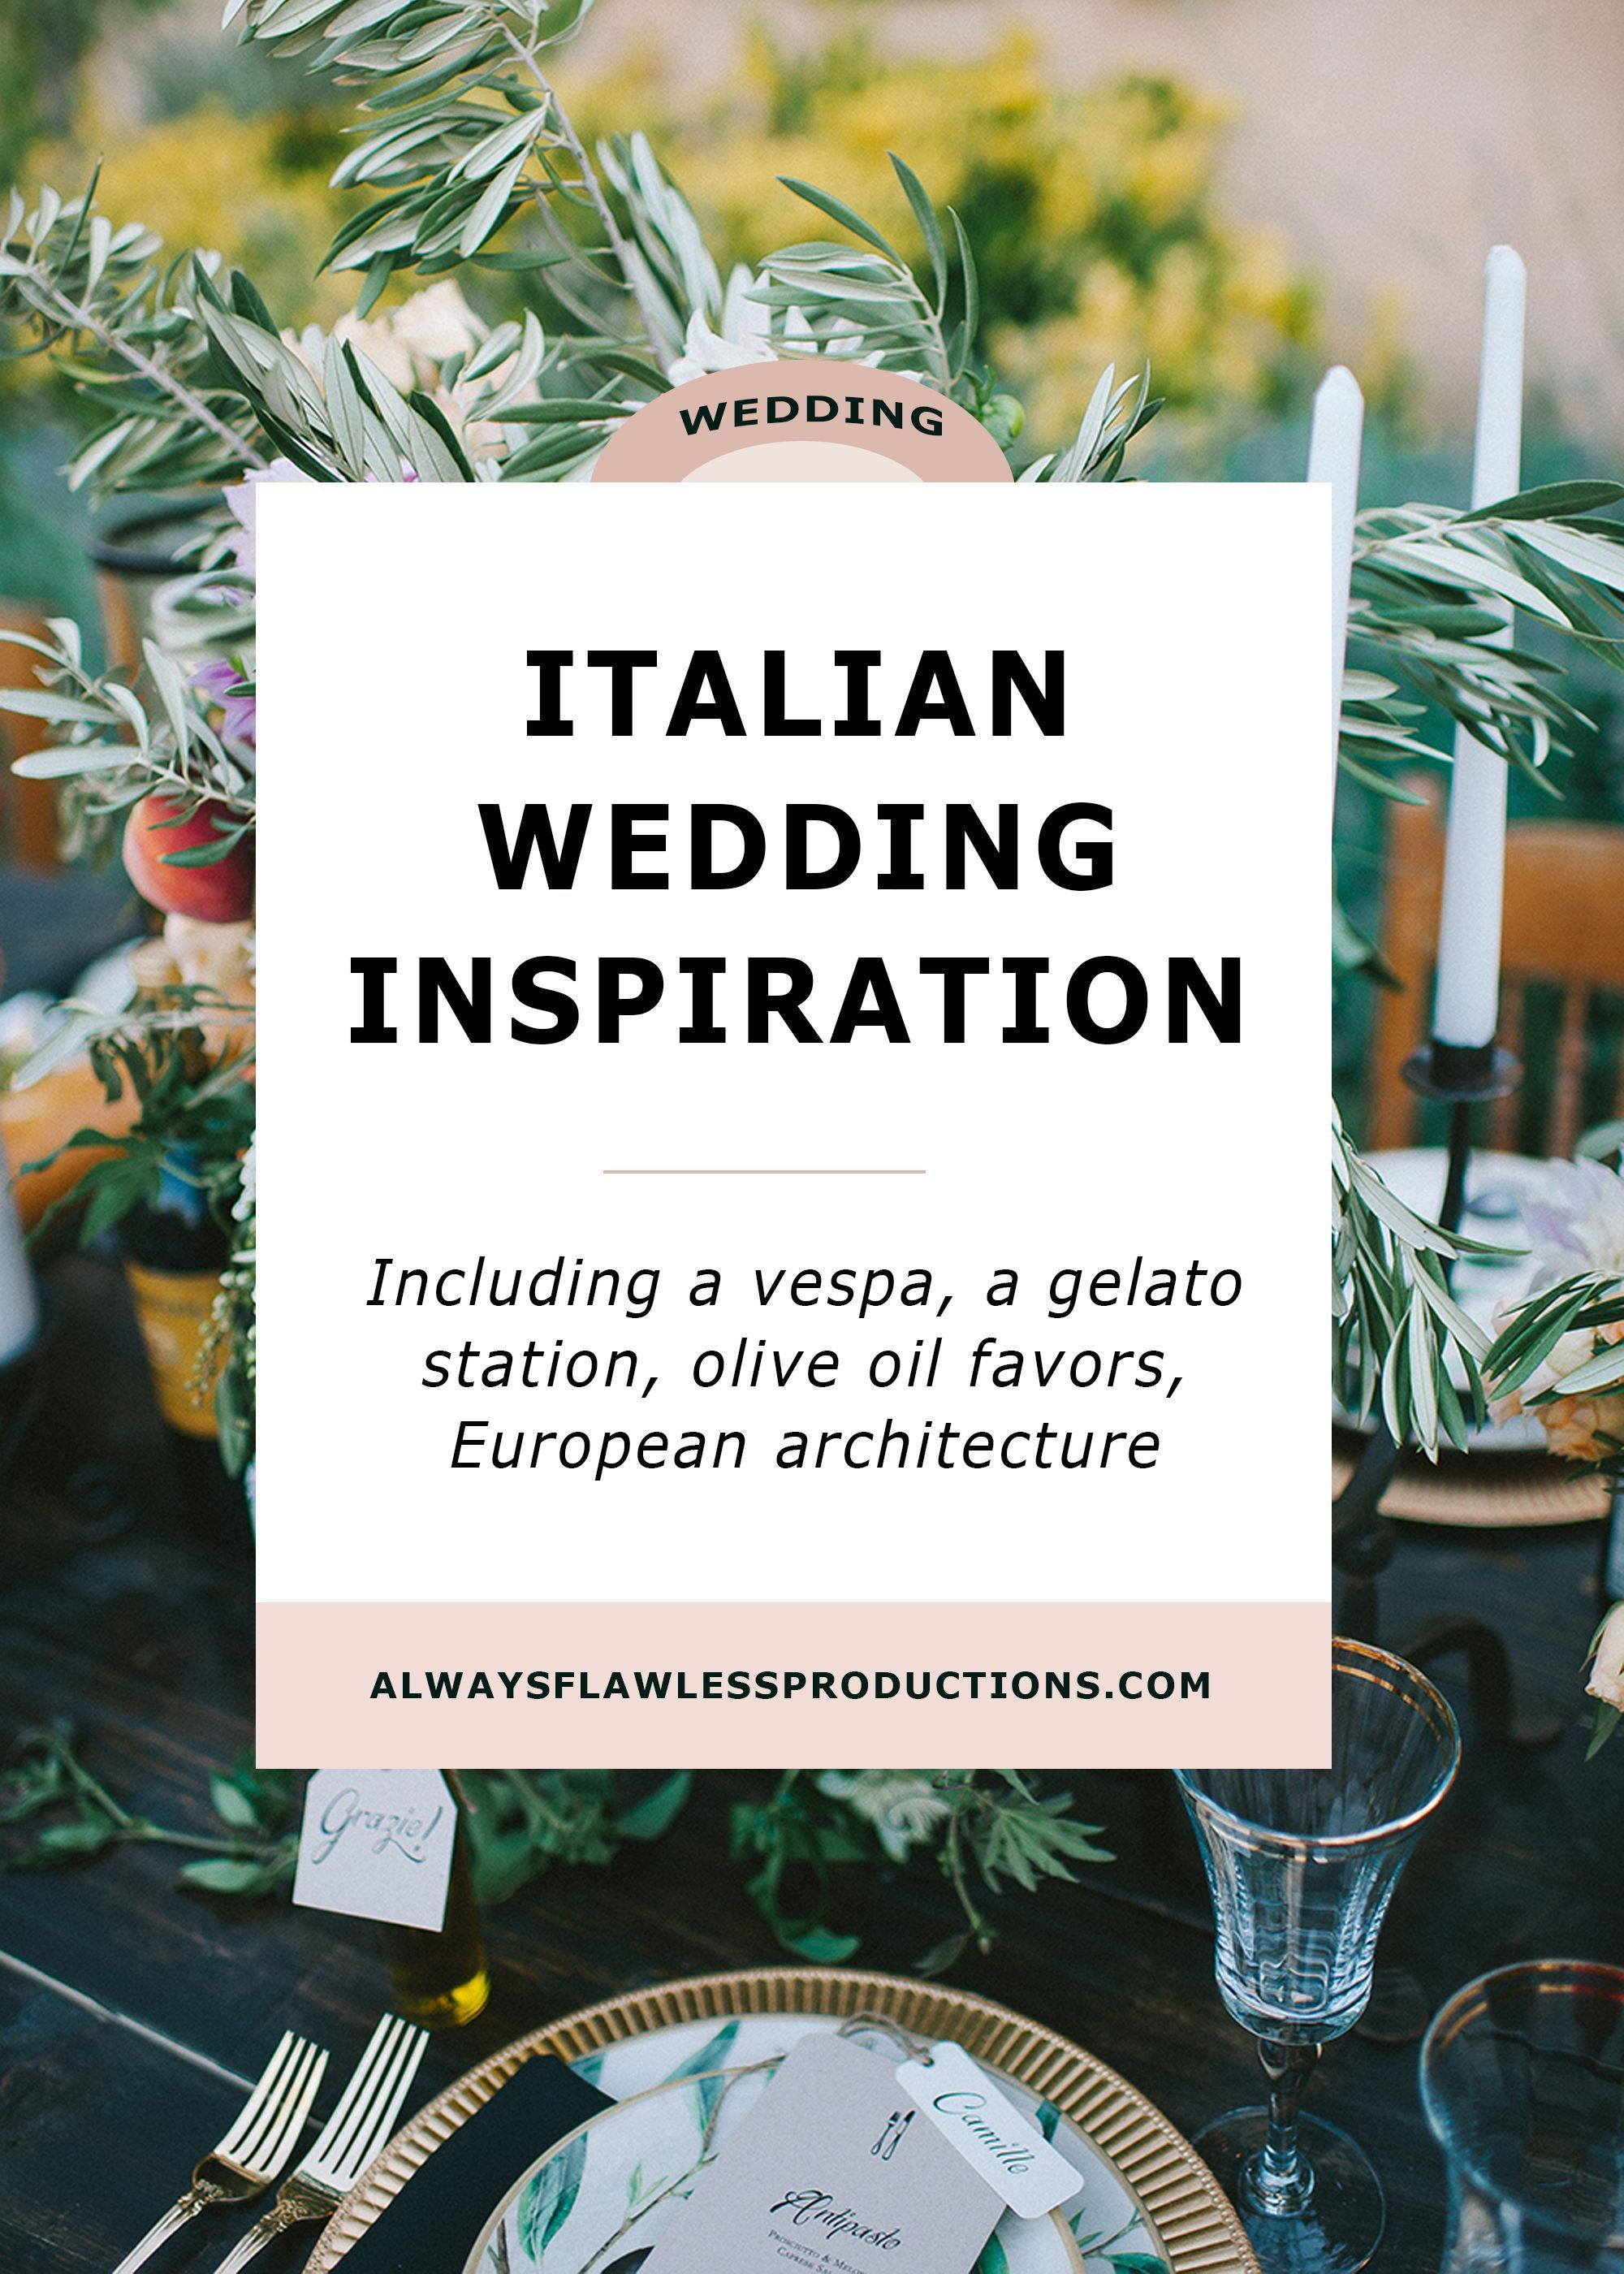 ITALIAN WEDDING INSPIRATION | Rustic wedding ideas, unique wedding ...